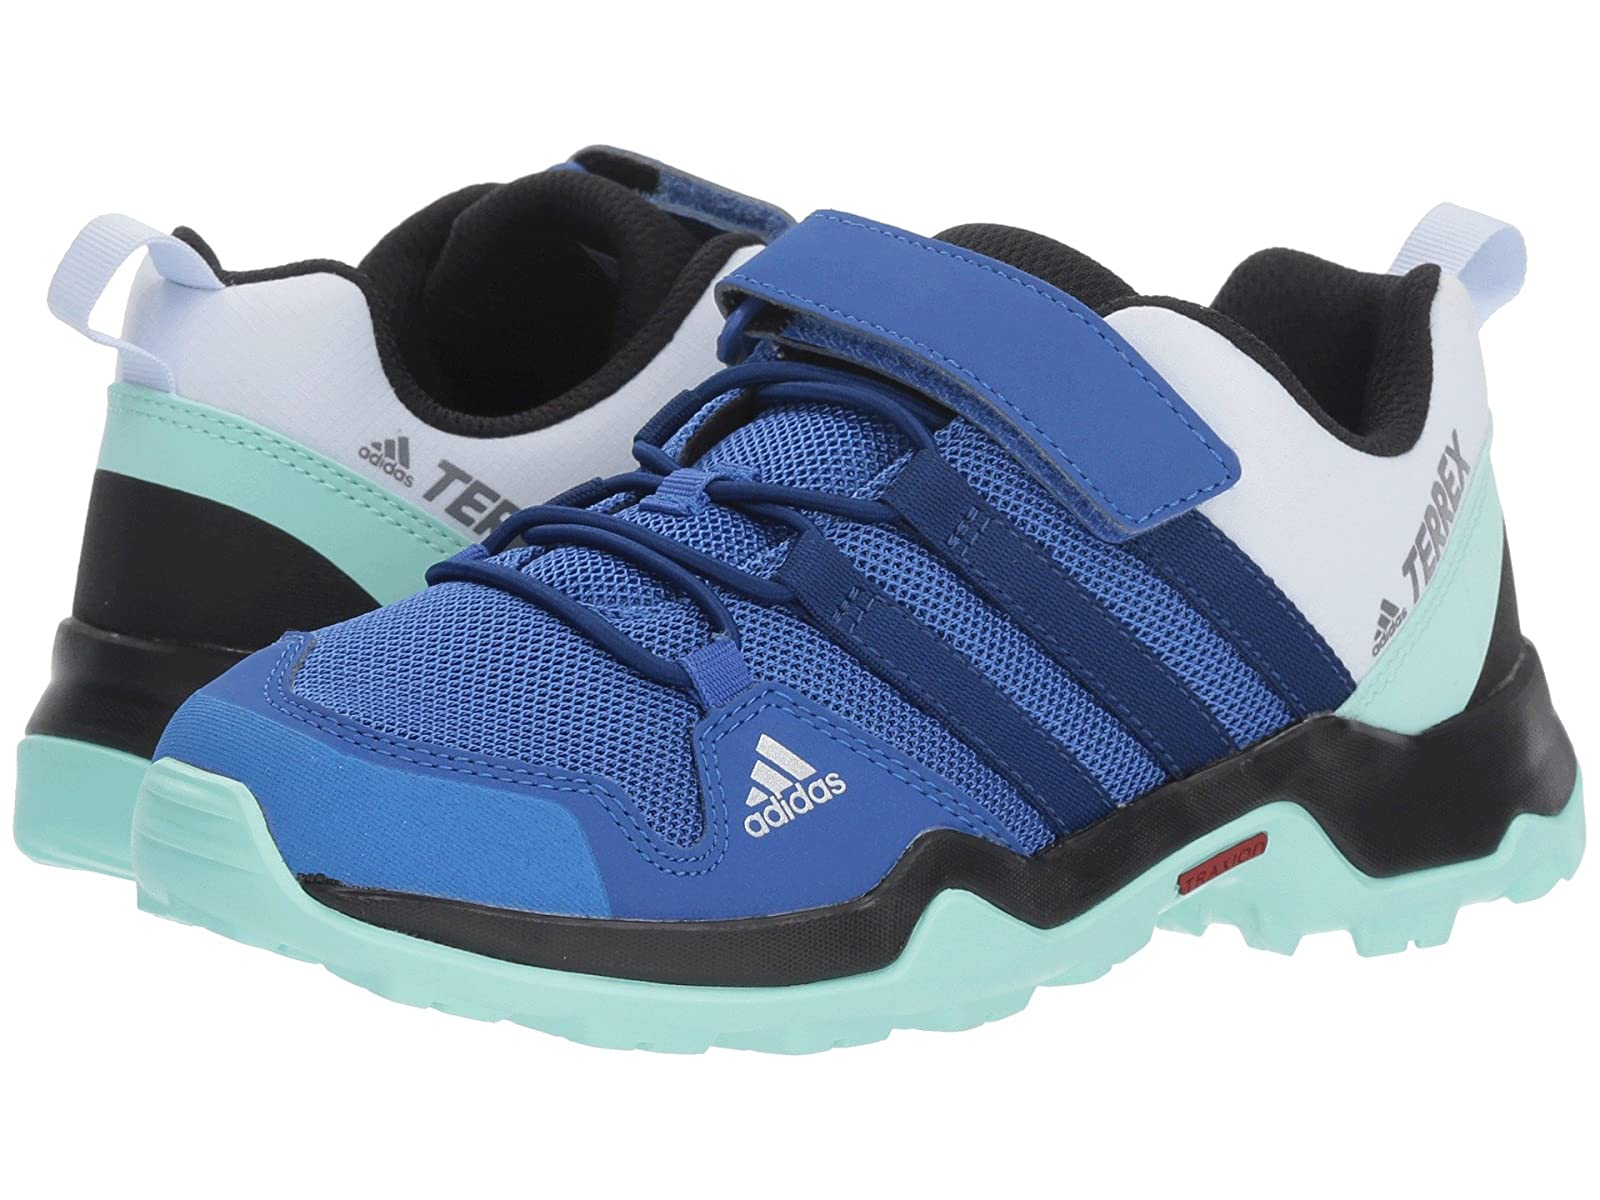 adidas Outdoor Kids Terrex AX2R CF (Little Kid/Big Kid)Atmospheric grades have affordable shoes